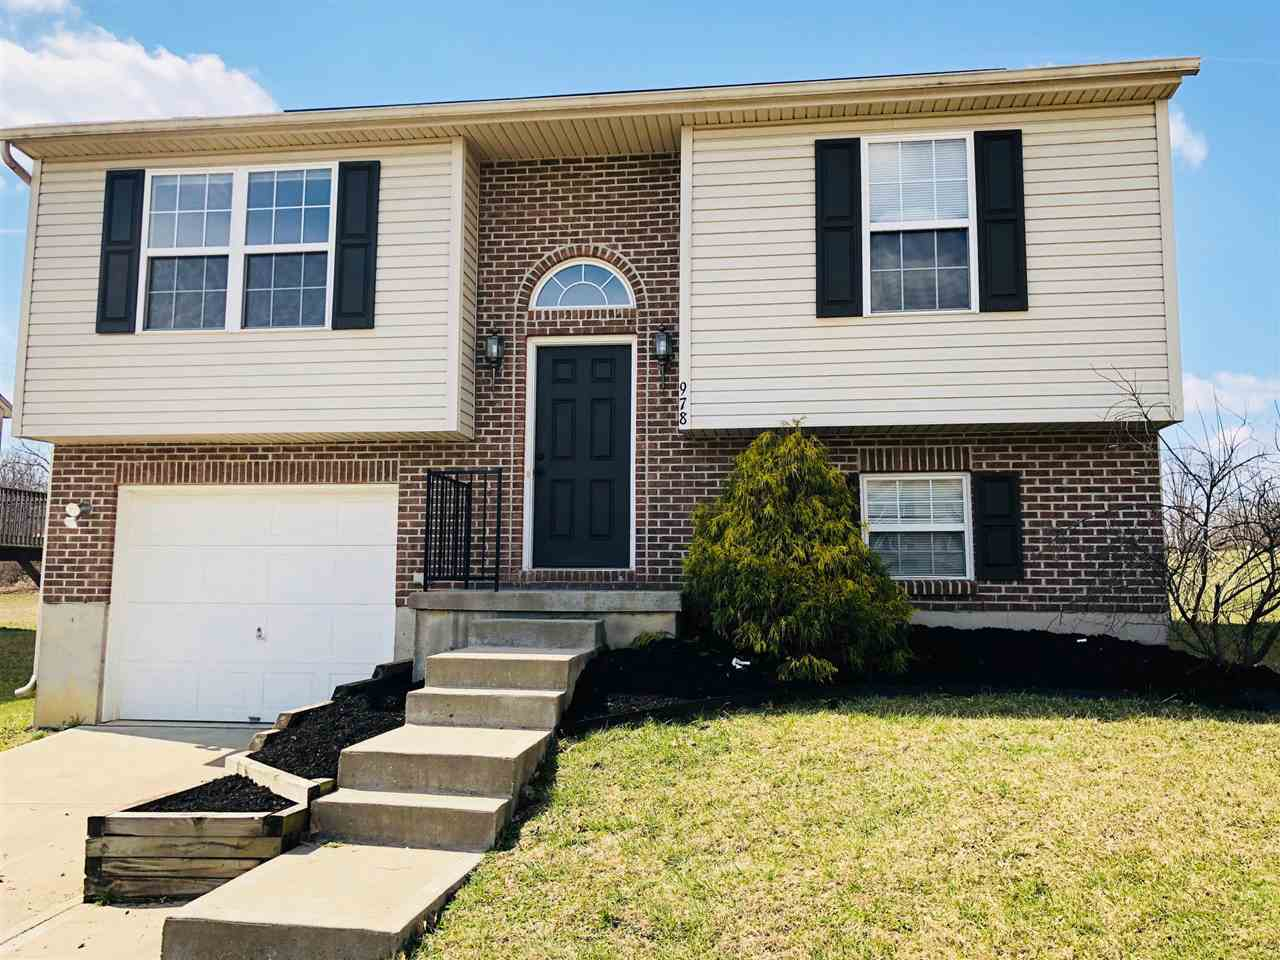 Photo 1 for 978 Wermeling Ln Erlanger, KY 41018